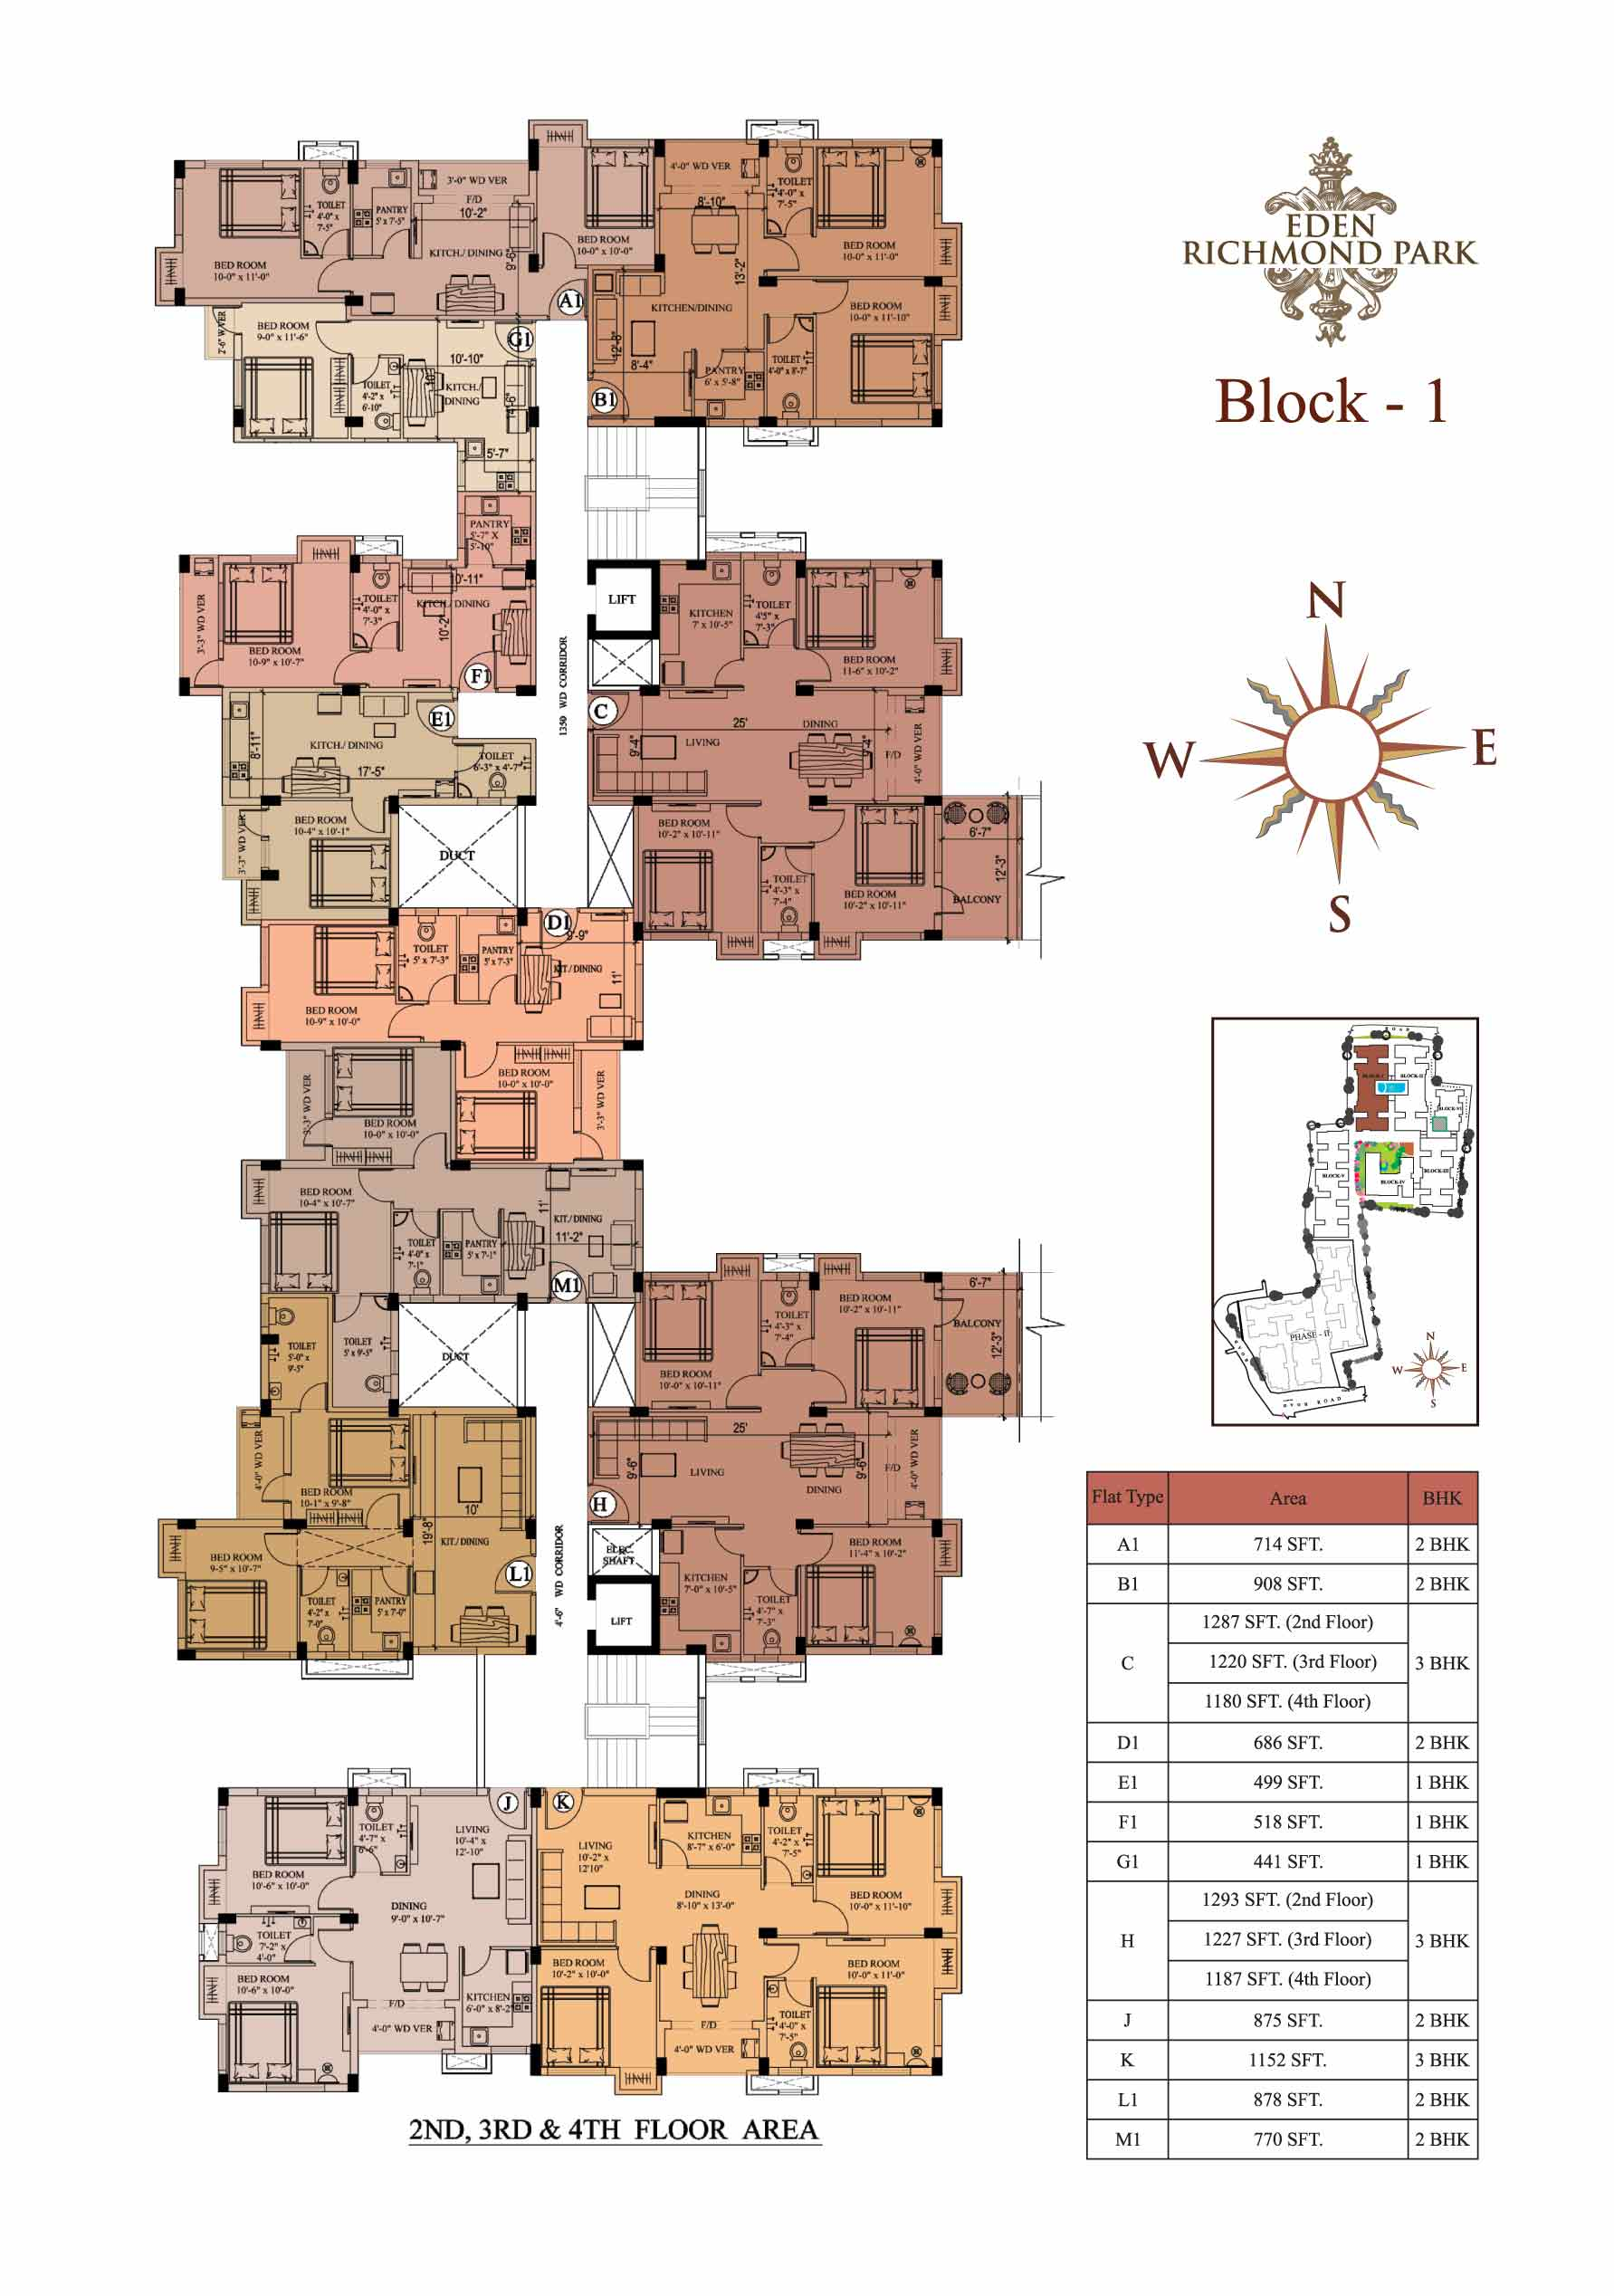 Eden Richmod Park Residential Project Apartments In Kolkata Electrical Wiring Diagram India As Well 2 Bedroom Richmond Block 1 2nd3rd 4th Floor Plan